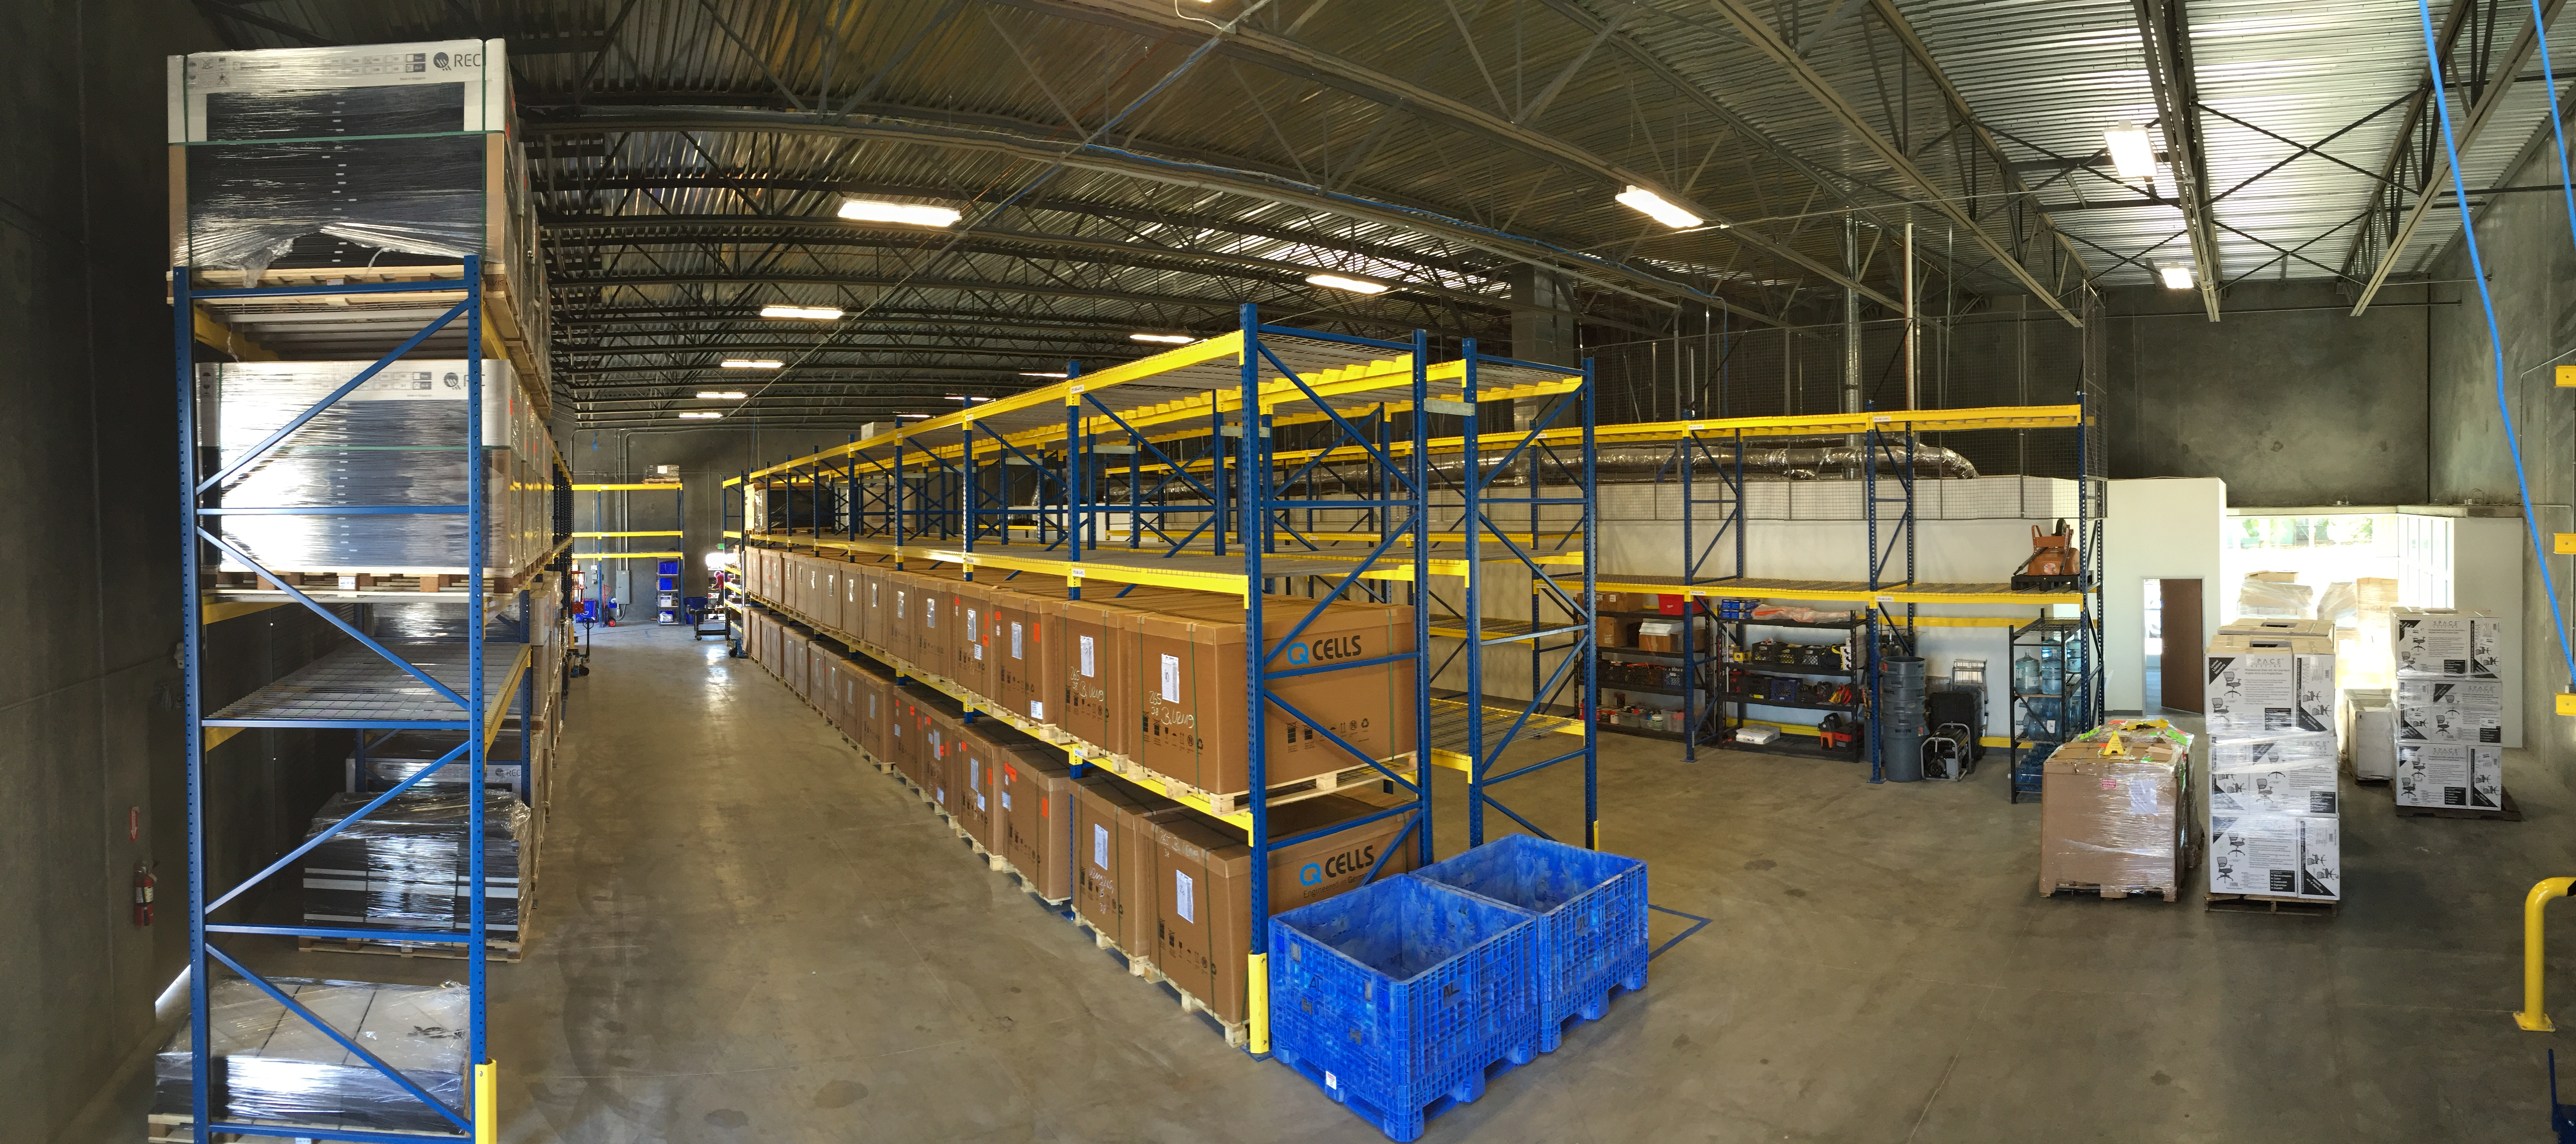 SunRun Growth Continues Past 100,000 Customer, adds 7 New Warehouses